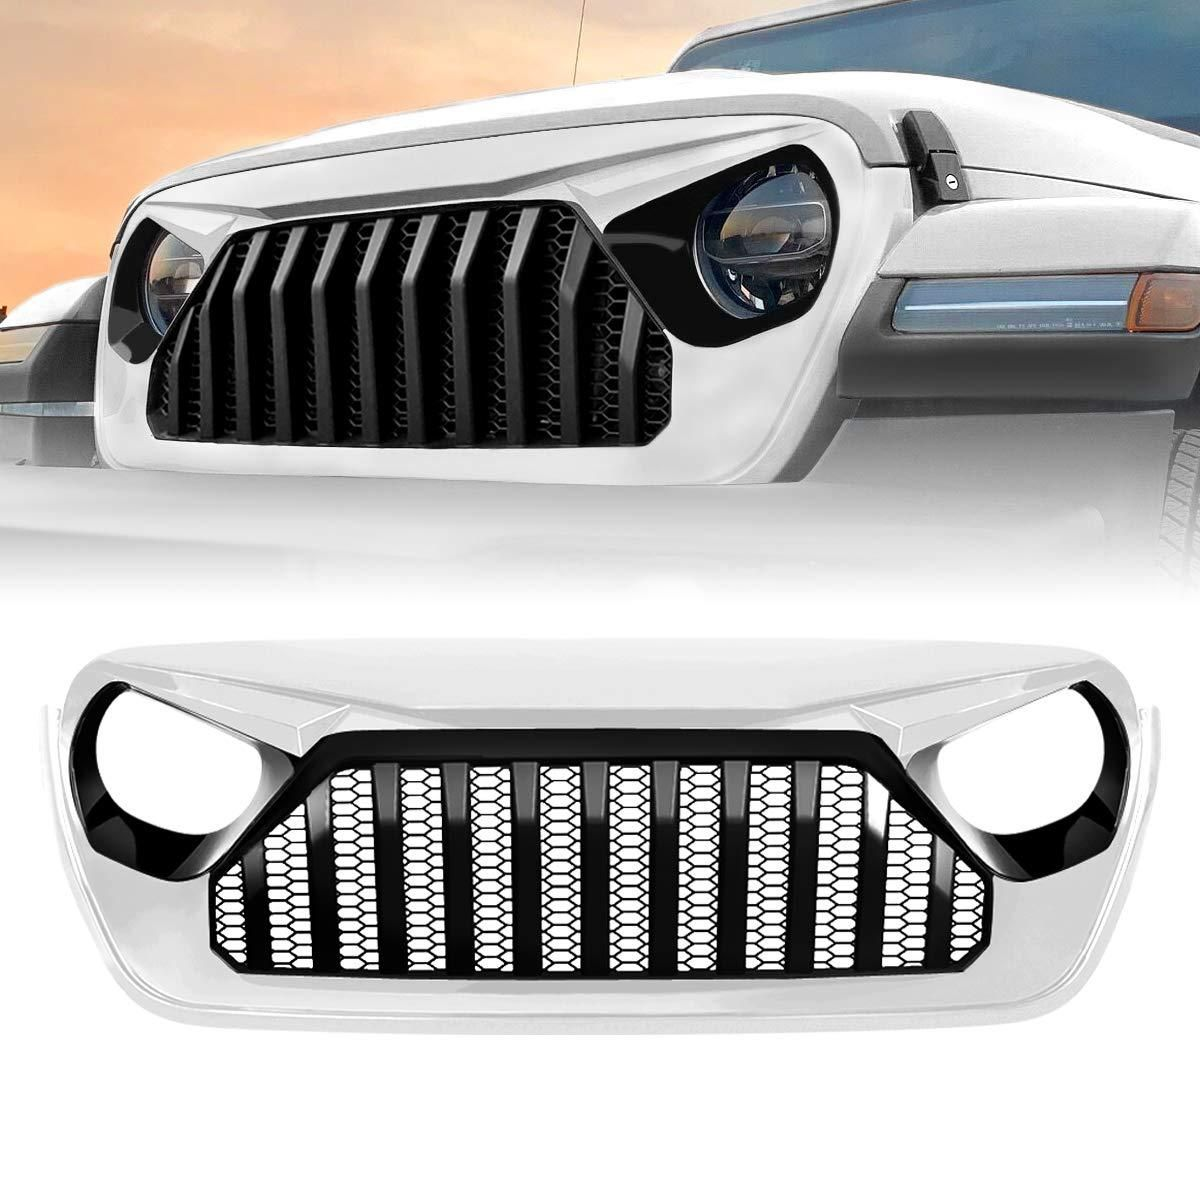 Vader Front Grille Wrangler Accessories Jeep Wrangler Accessories Jeep Wrangler